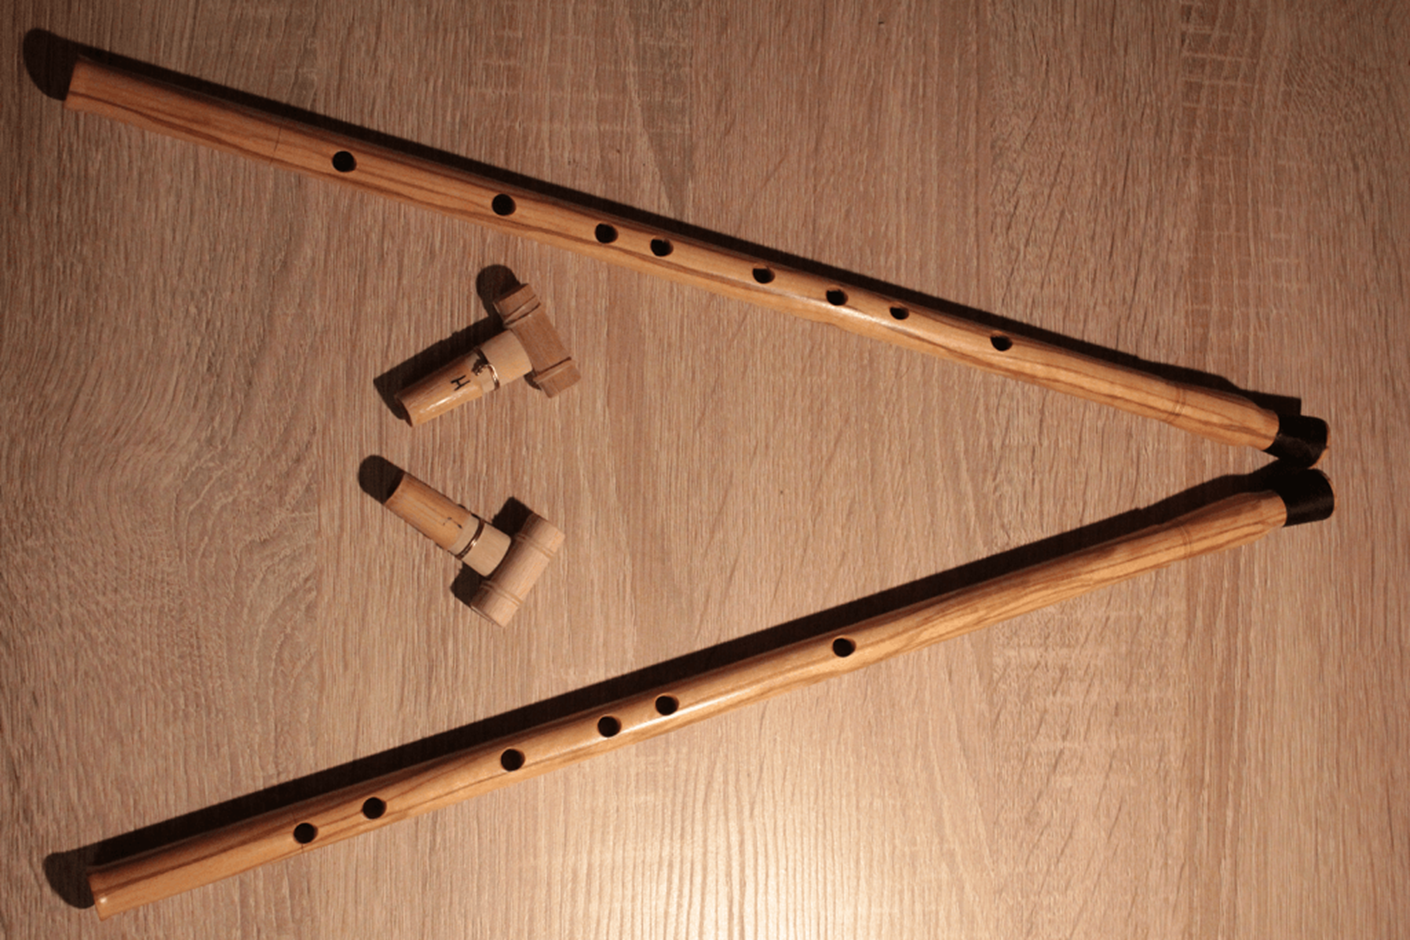 Two aulos pipes